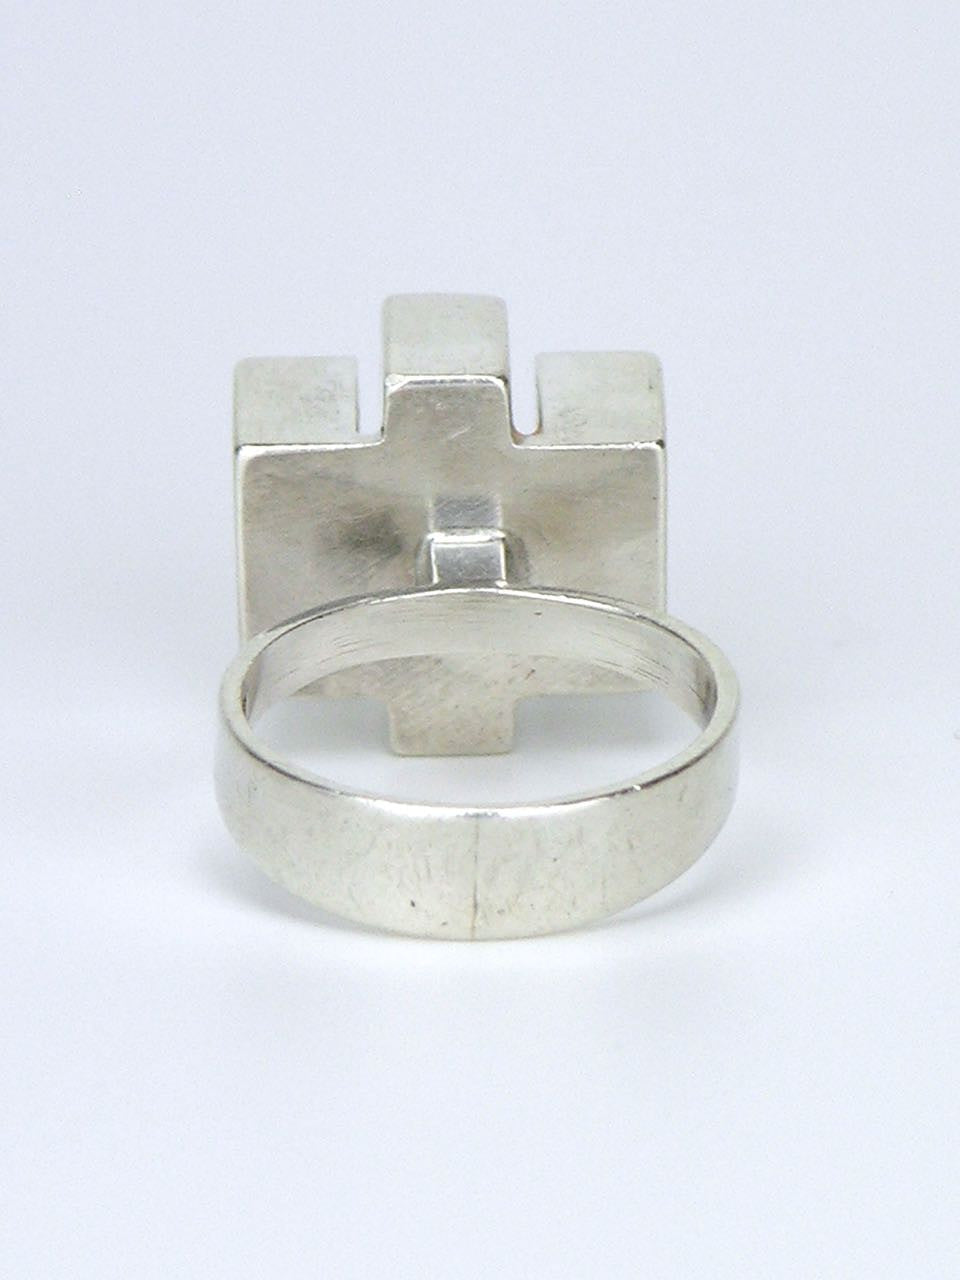 Swedish silver modernist cube ring